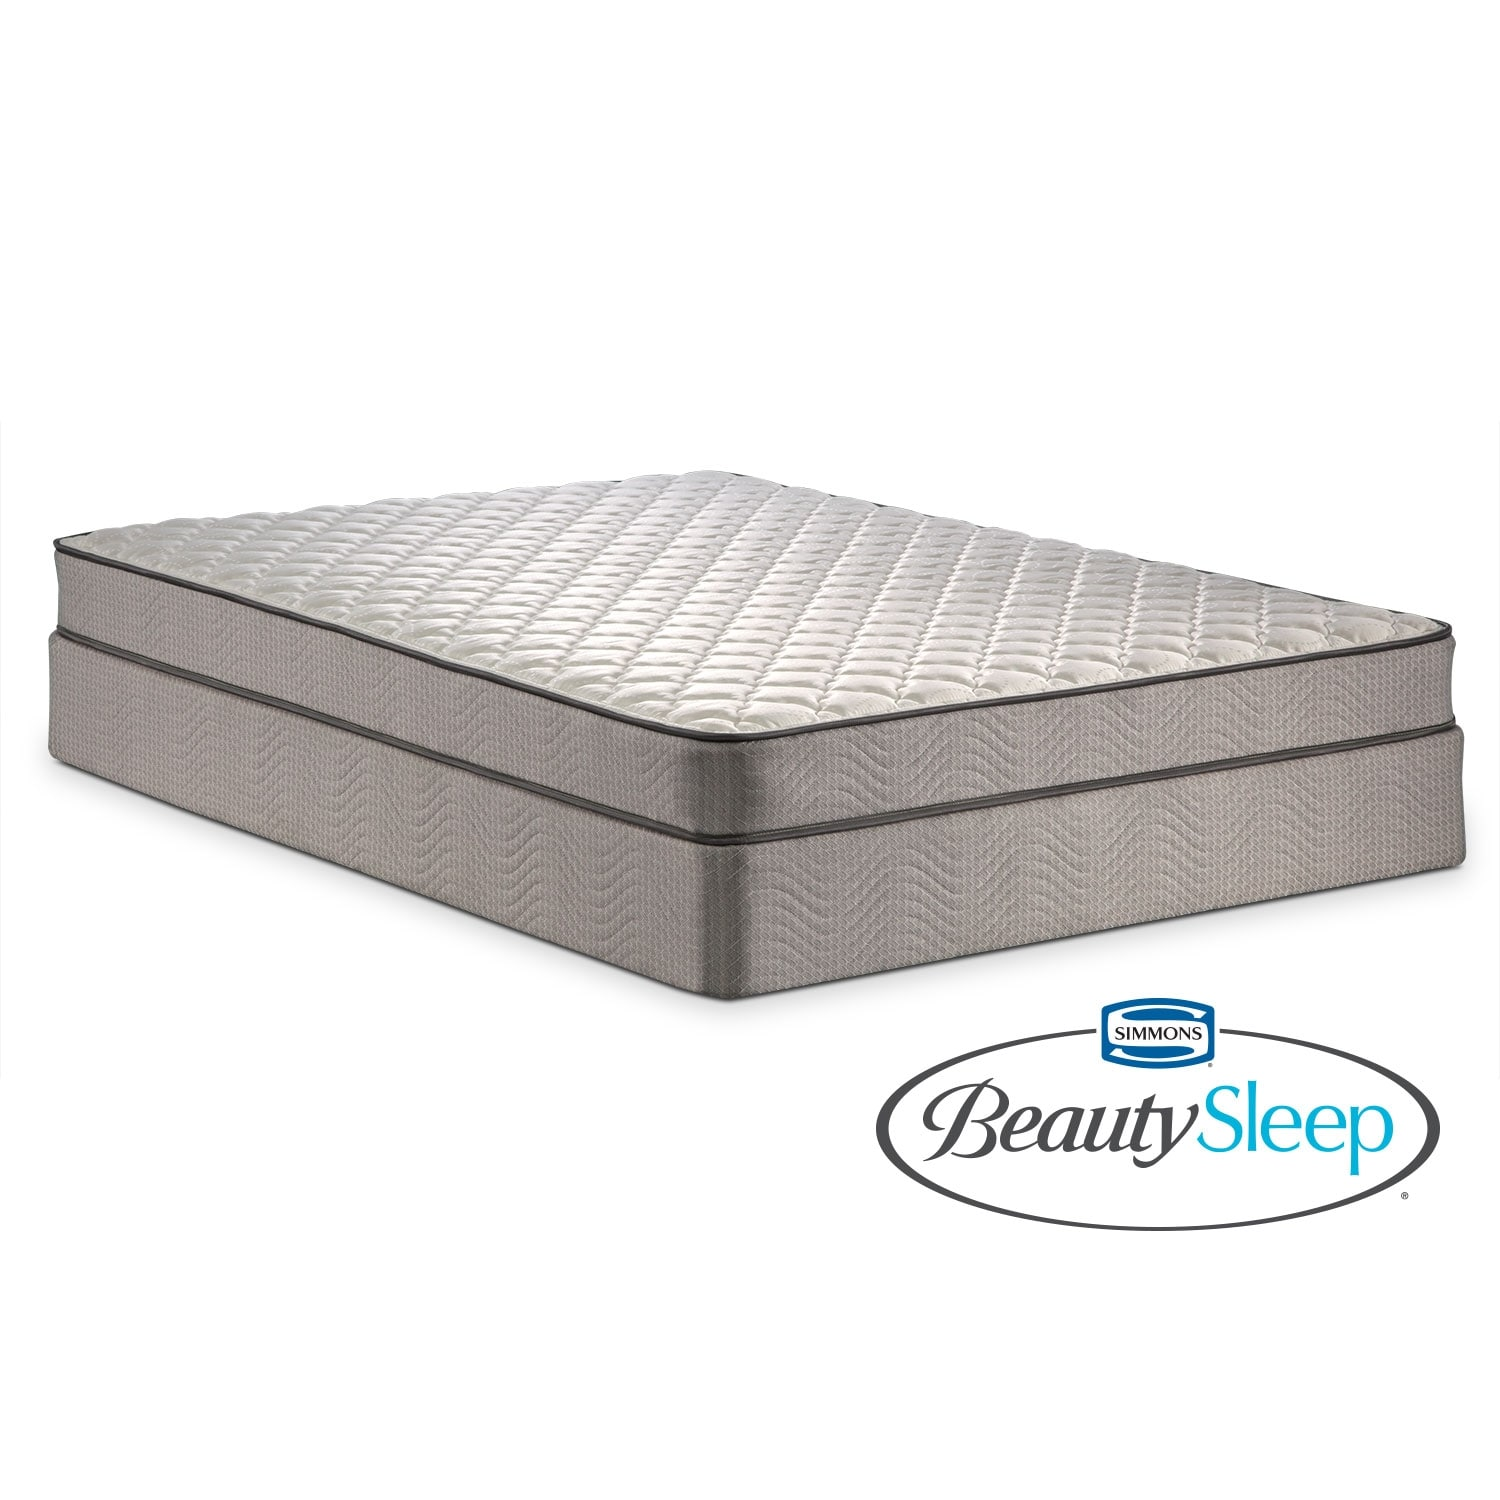 Mattresses and Bedding - Oakdale Firm Queen Mattress and Low-Profile Foundation Set